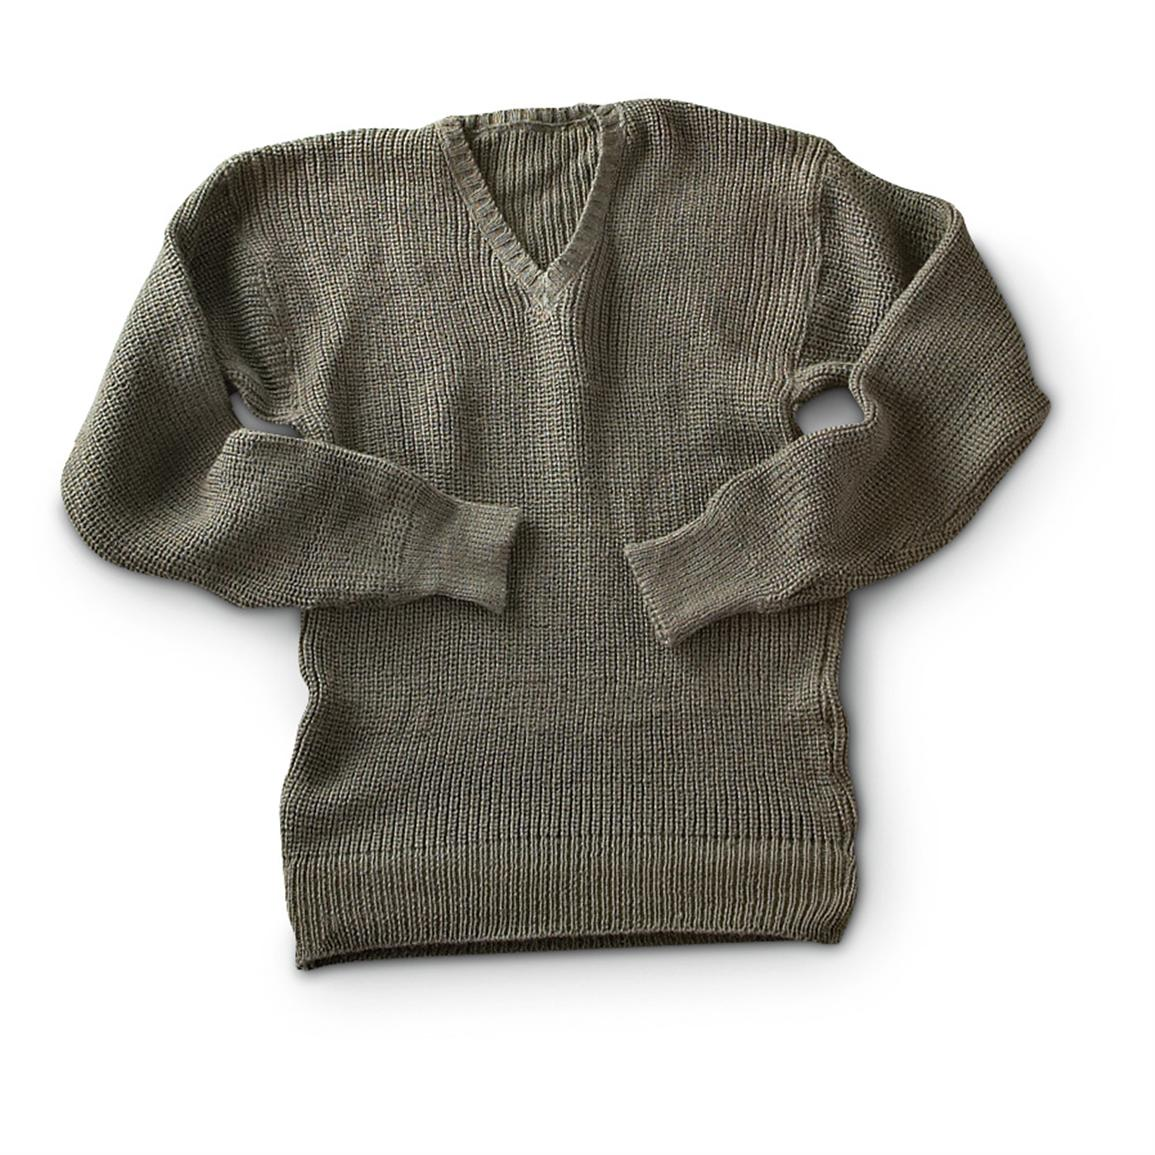 Used Swedish Military surplus-issue Wool Sweater, Brown